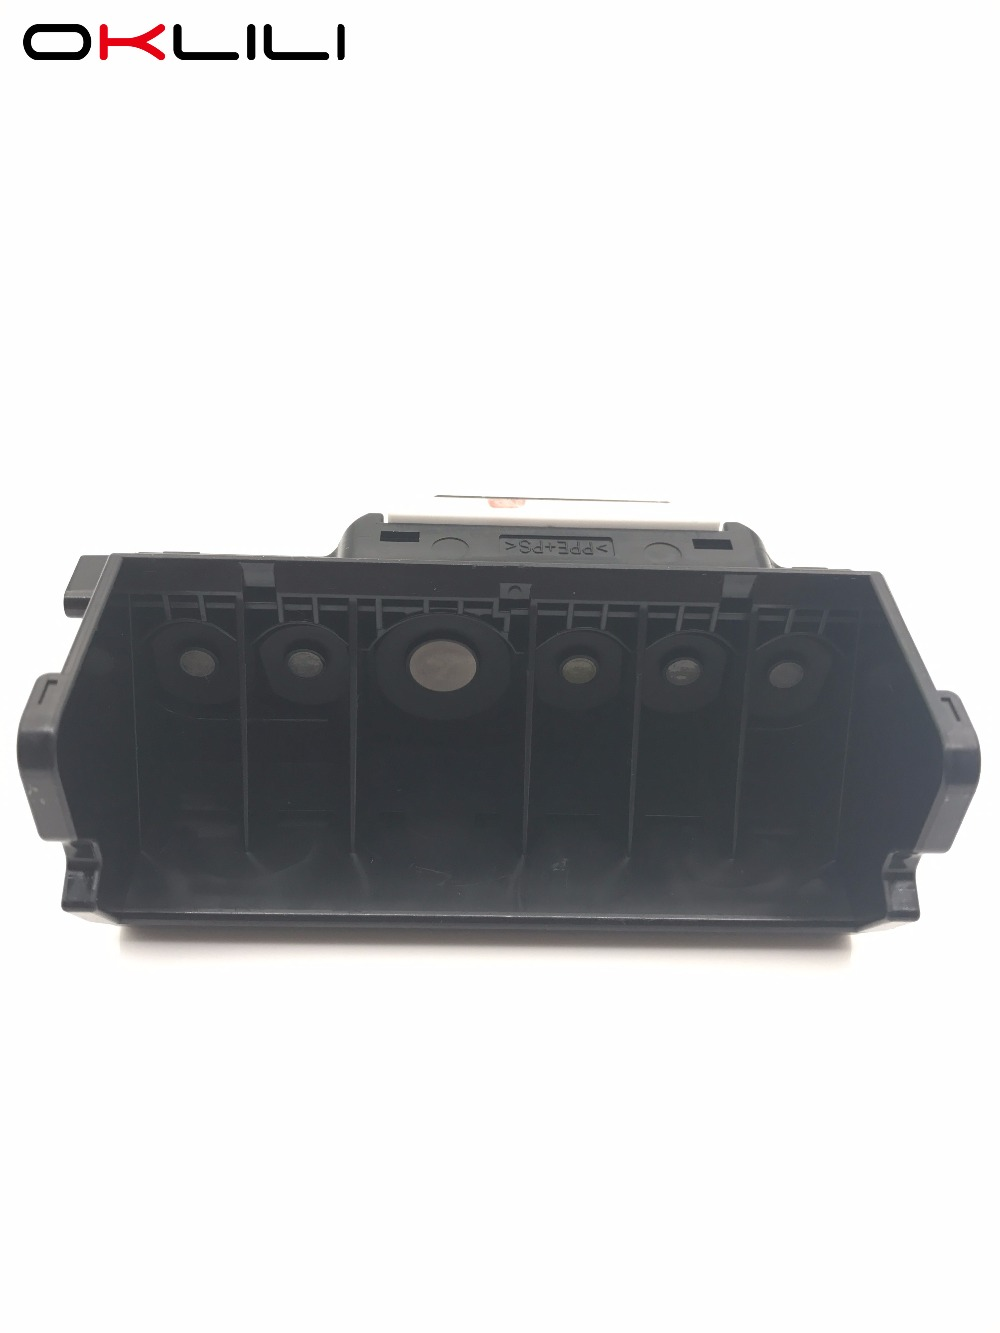 QY6-0078 QY6-0078-000 Printhead Printer Print Head for Canon MP990 MP996 MG6120 MG6140 MG6180 MG6280 MG8120 MG8180 MG8280 MG6250 cnd цвет romantique 15 мл